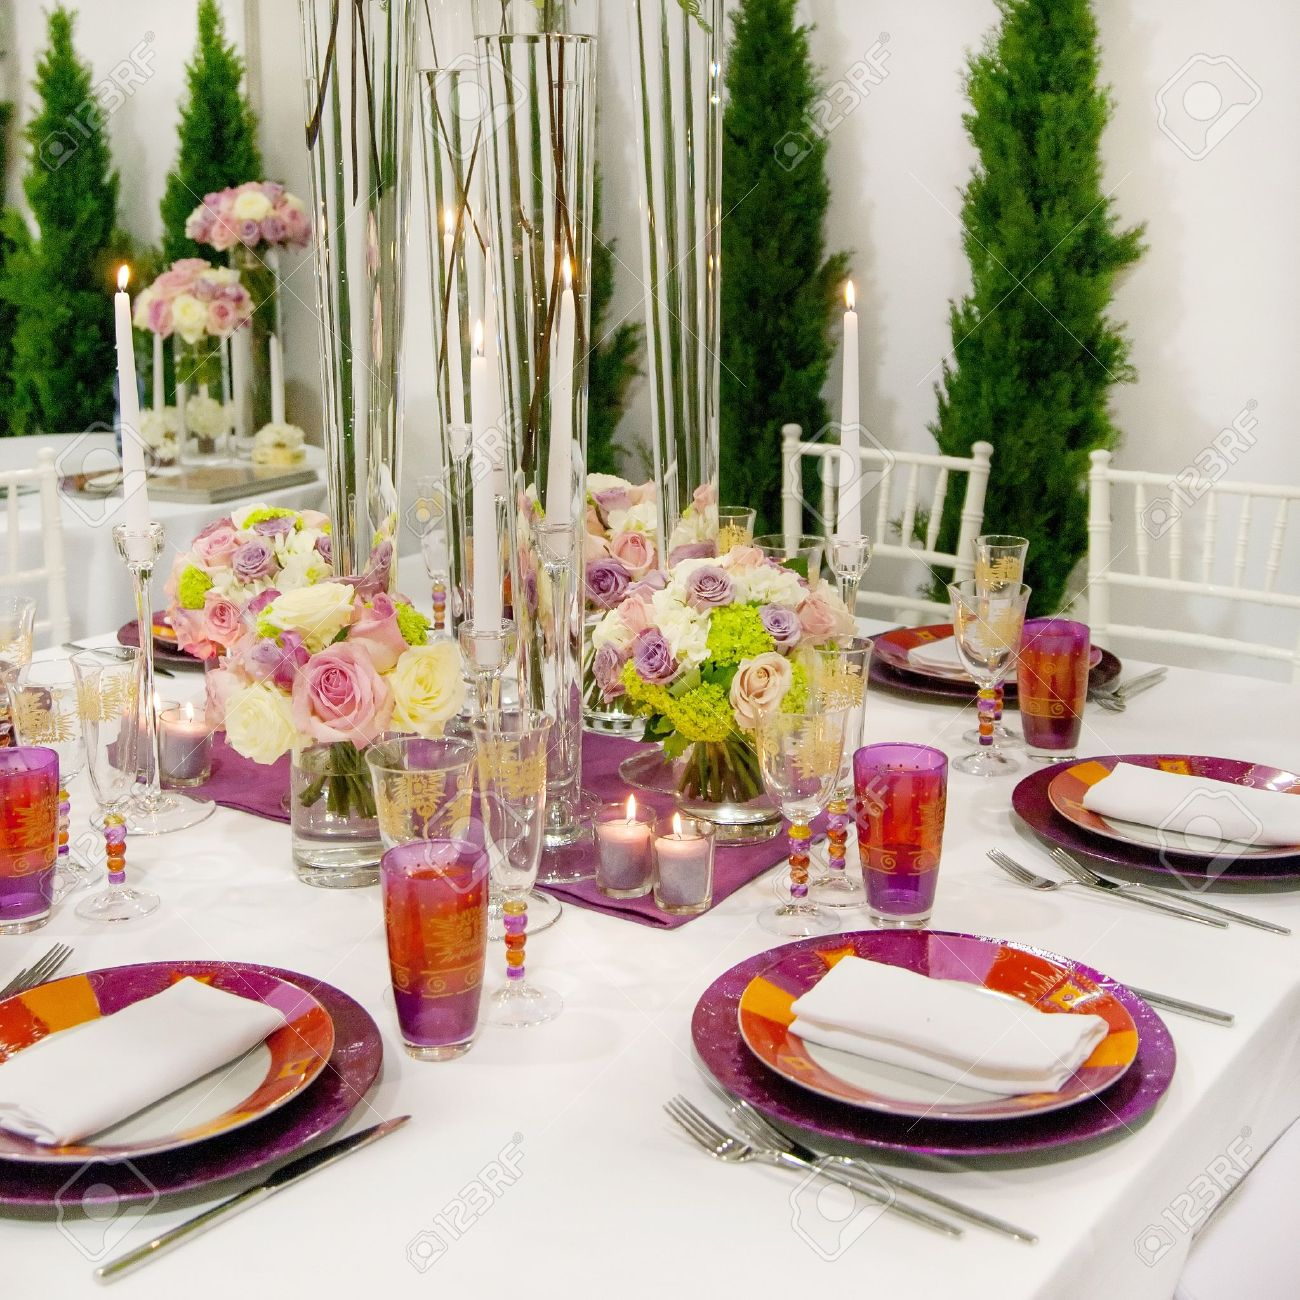 Decorated Tables Tables Decorated For A Party Or Wedding Reception Stock Photo